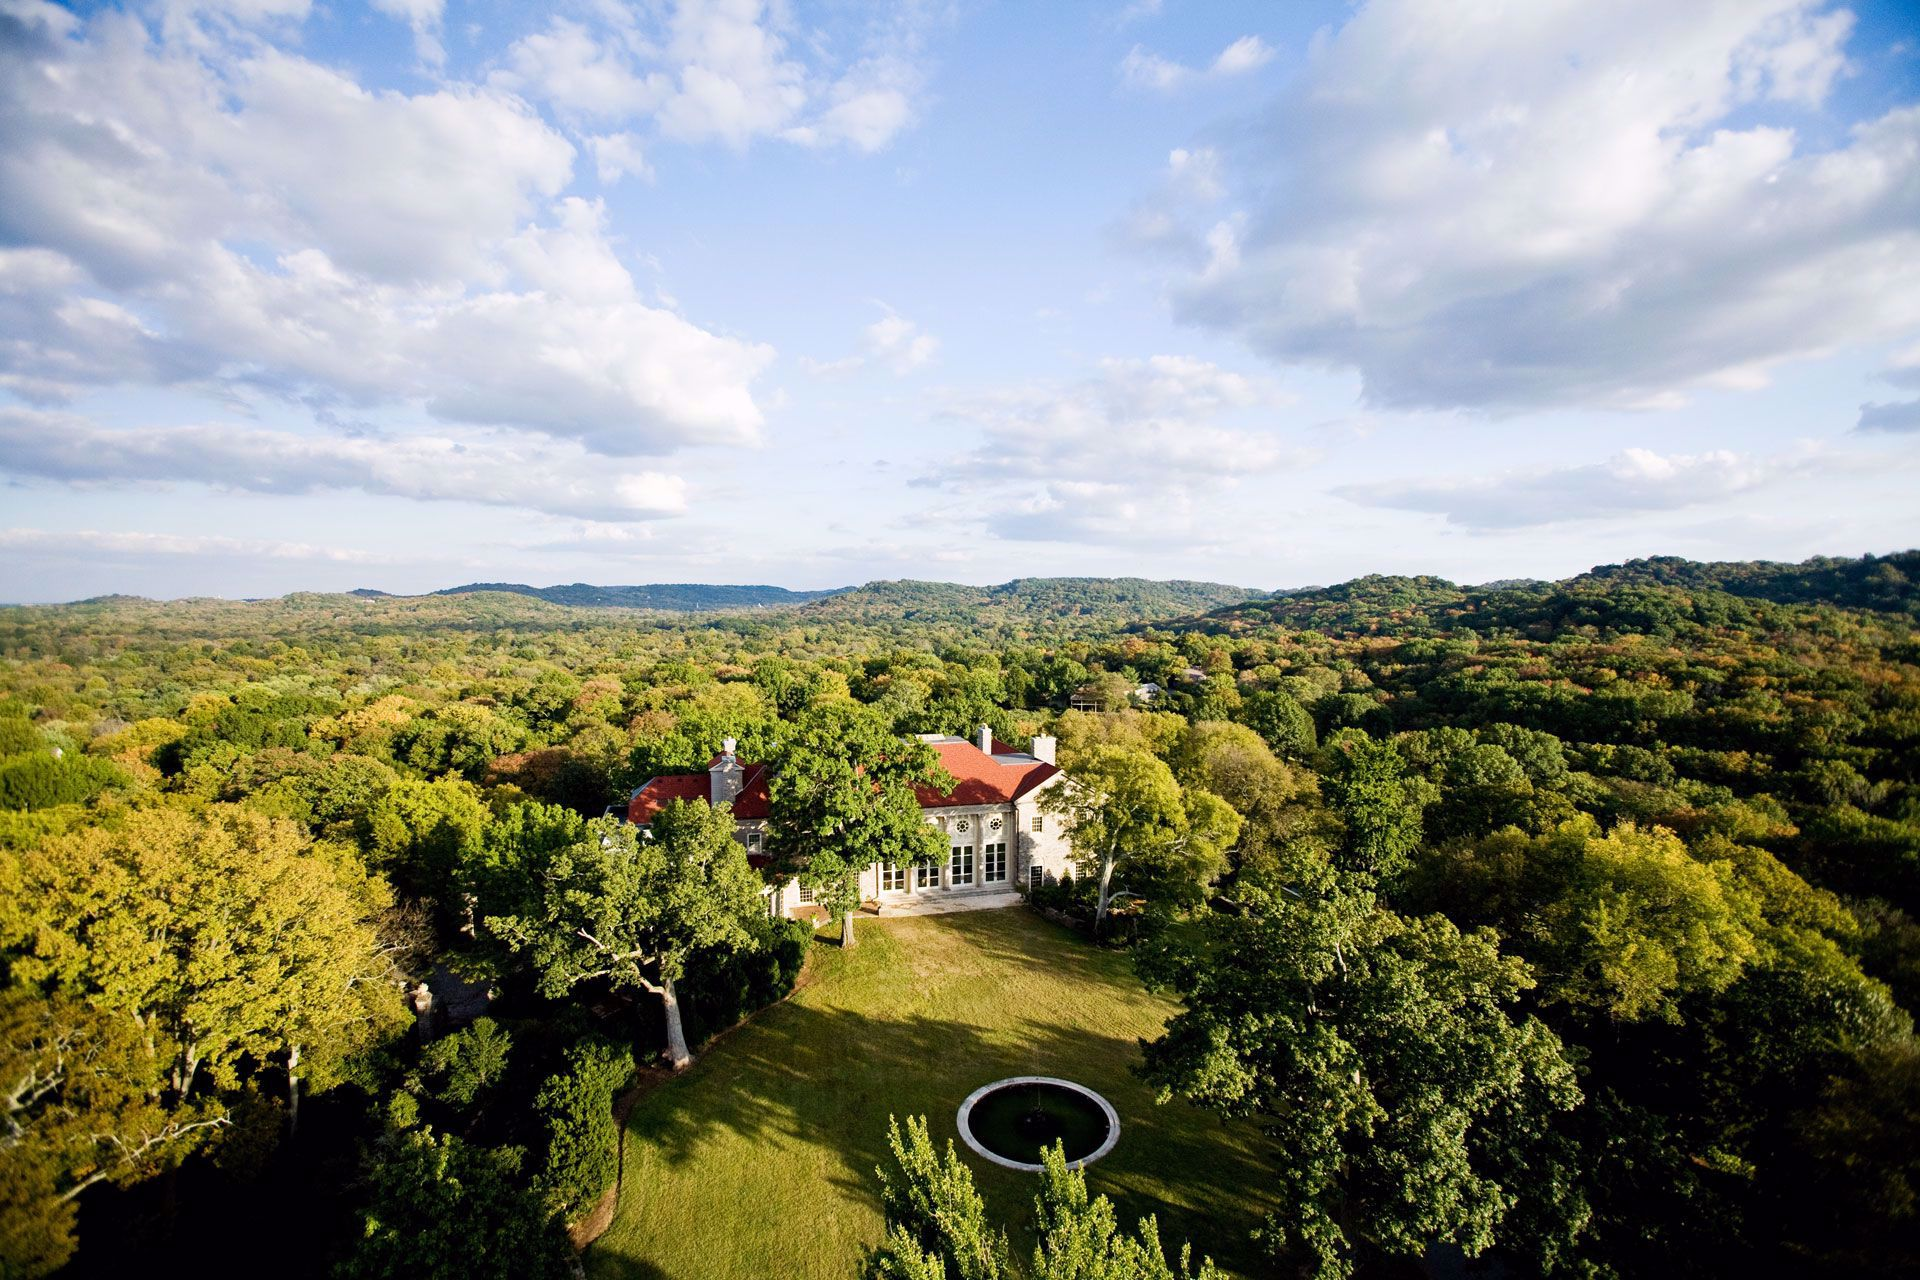 A 55-acre American country place era estate